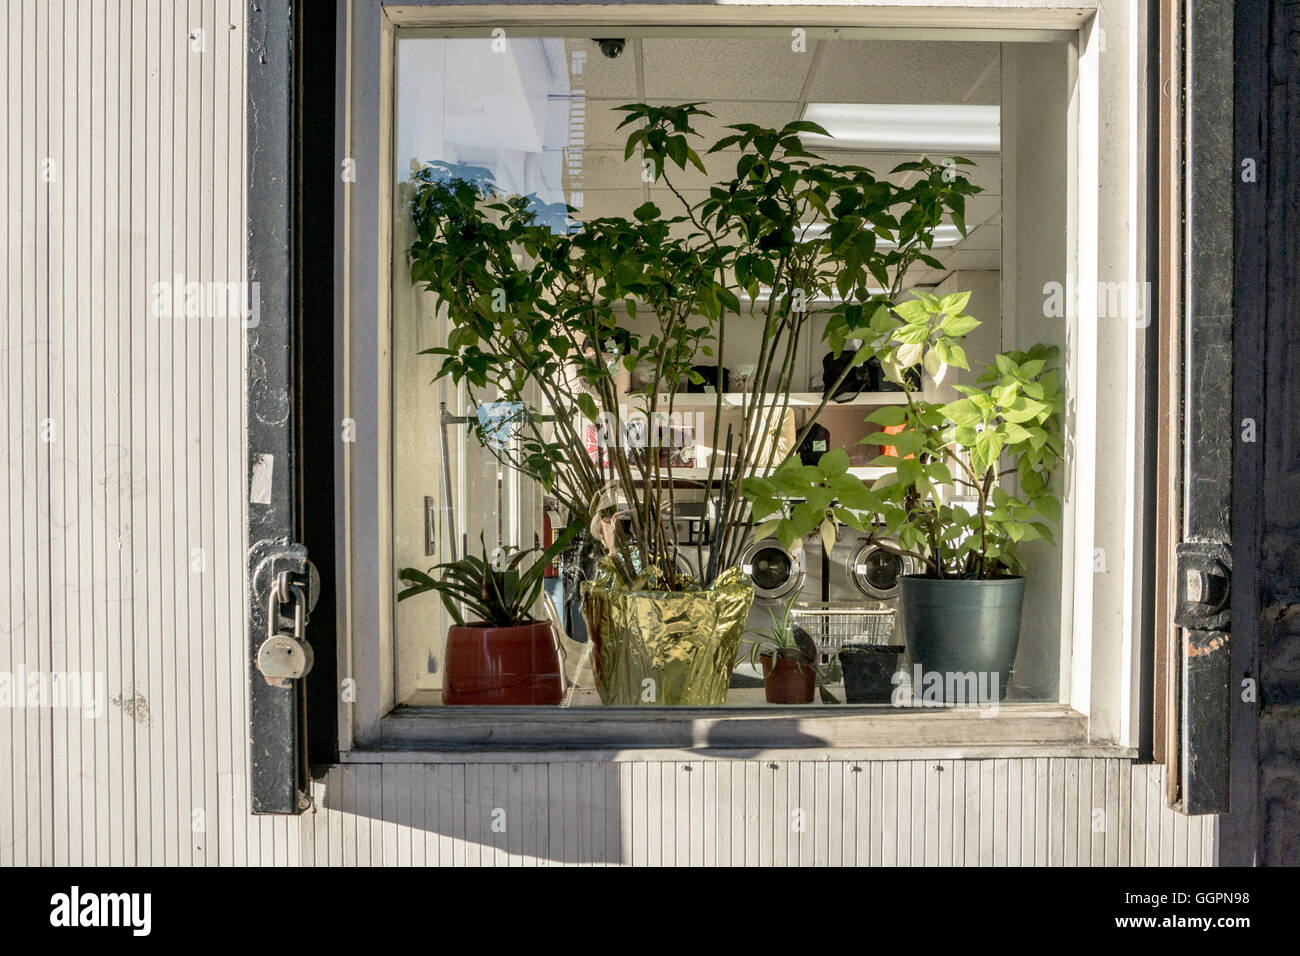 south window of corner laundromat on 10th avenue with well tended living plants screening machines & bundles - Stock Image